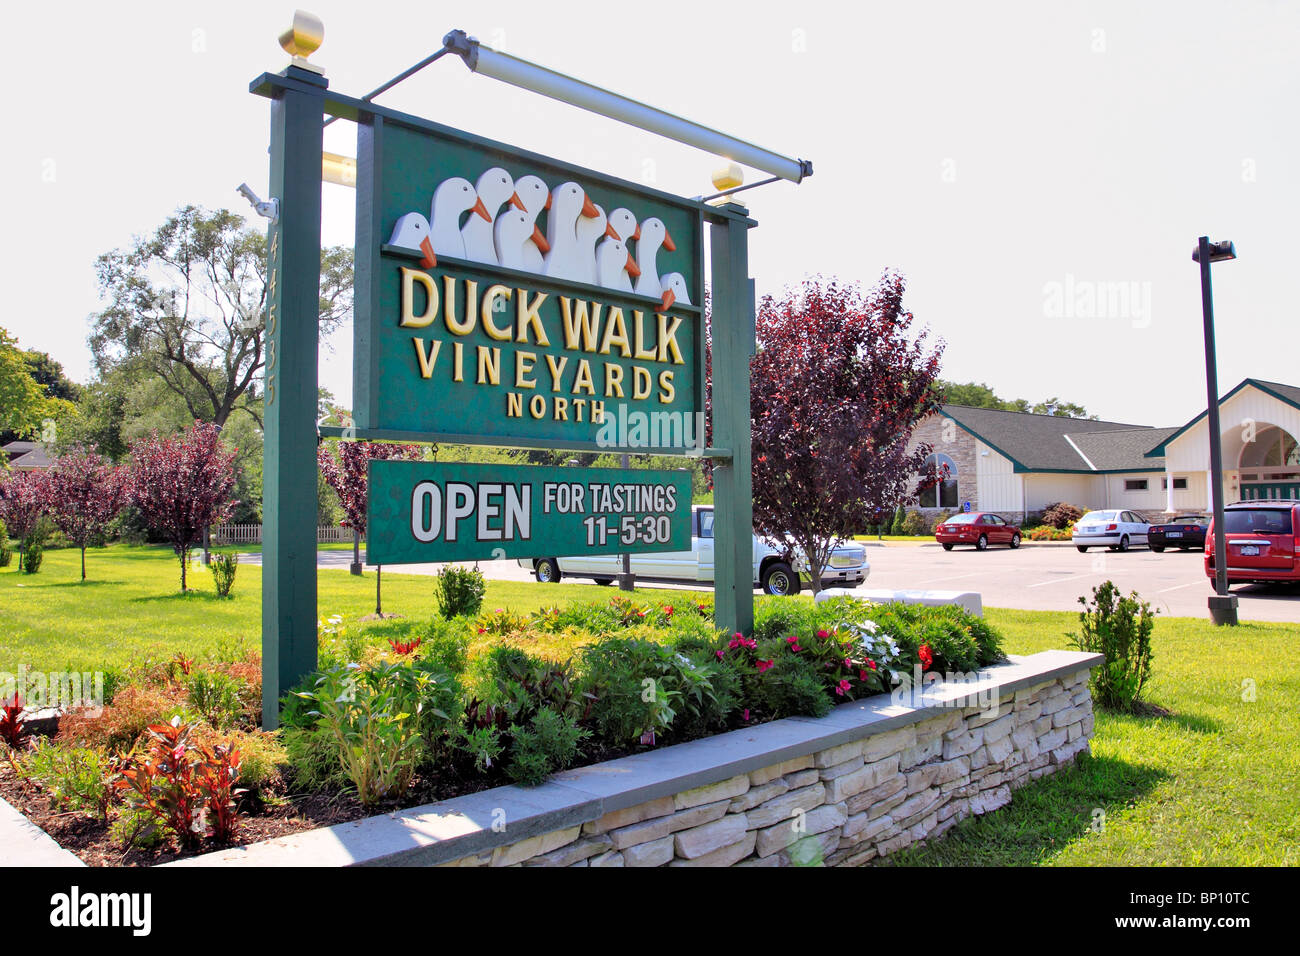 Duck Walk winery and vineyards, Peconic, north fork of eastern Long Island NY - Stock Image